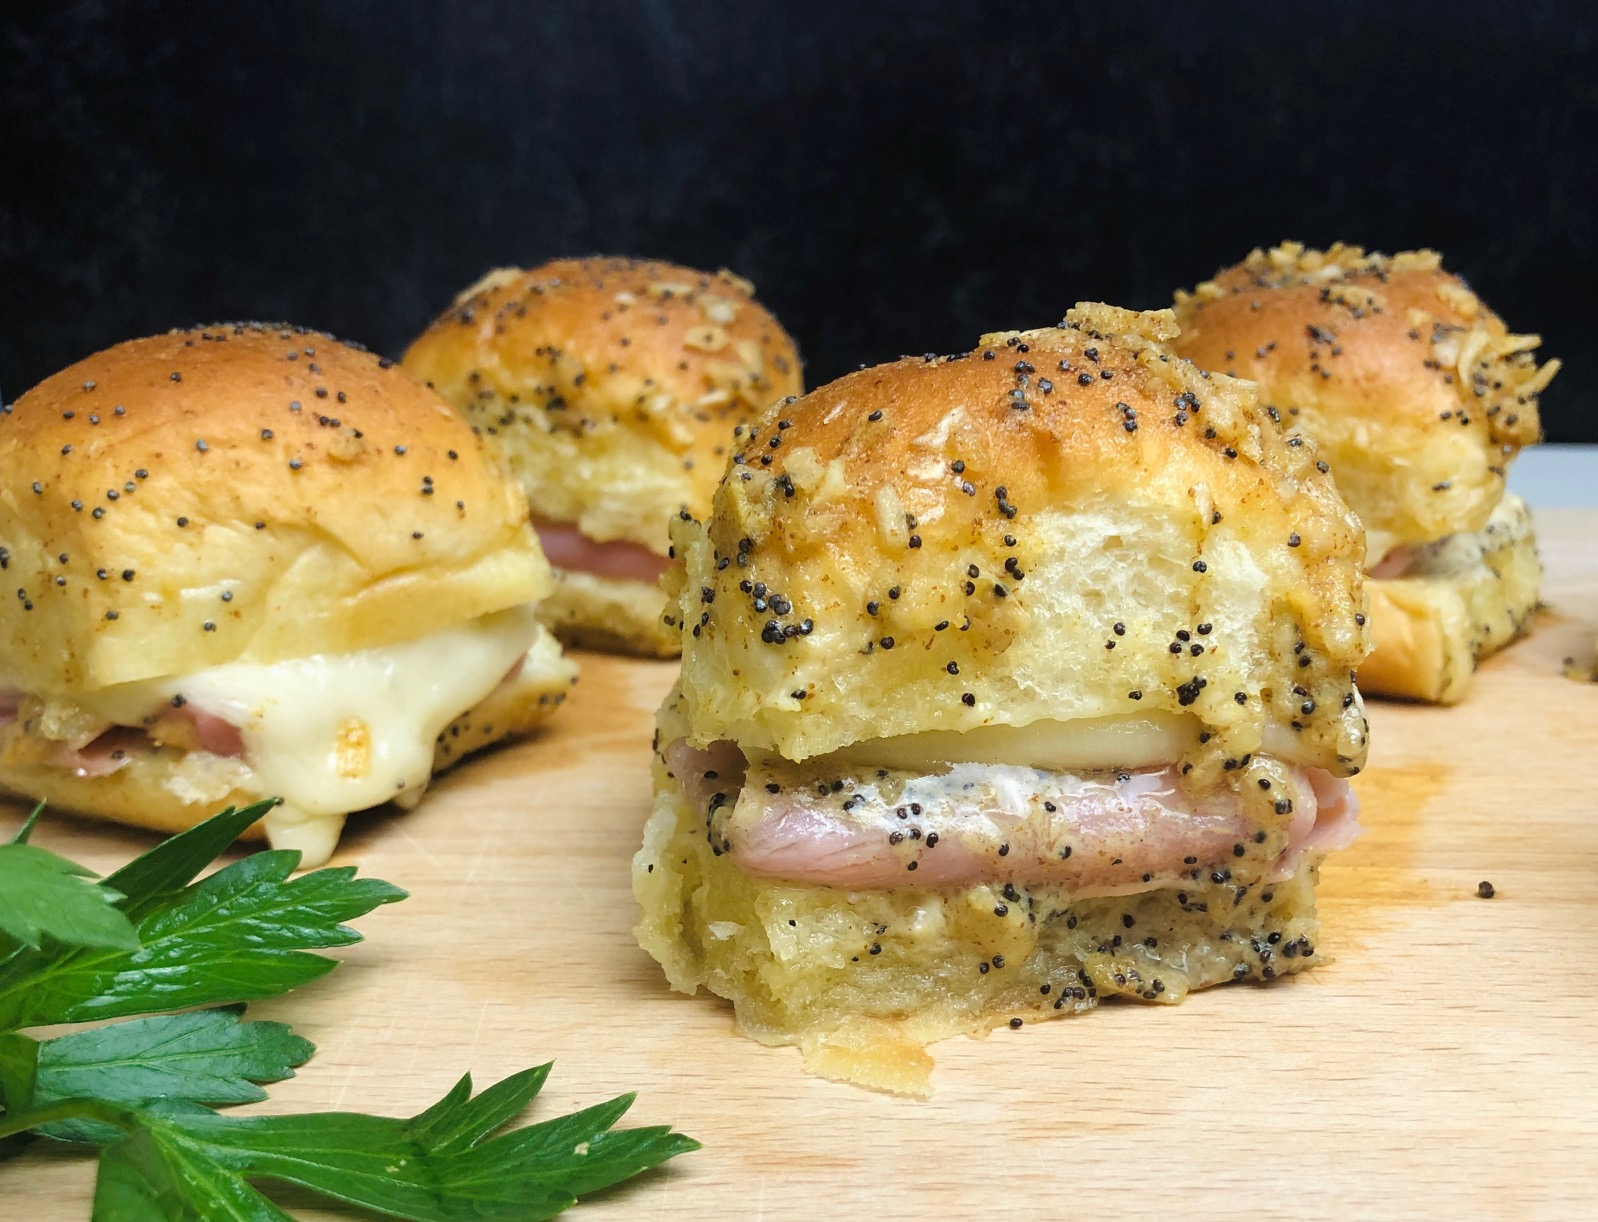 ham-and-cheese-sliders-recipe-heather-lucilles-kitchen-food-blog